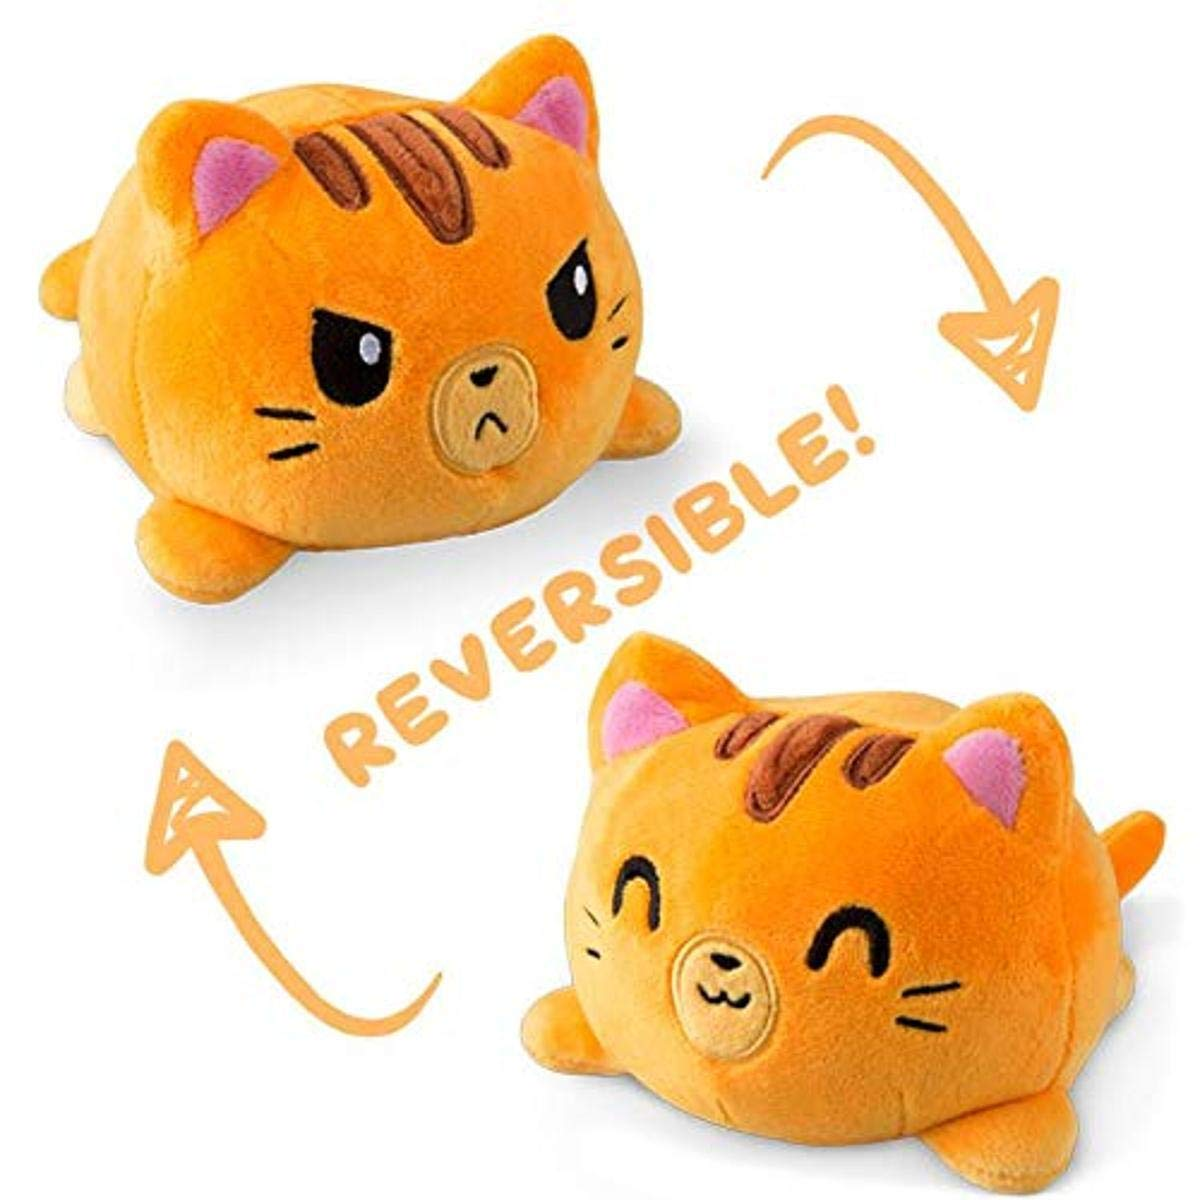 TeeTurtle | The Original Reversible Cat Plushie | Patented Design | Orange Tabby | Show Your Mood Without Saying a Word!